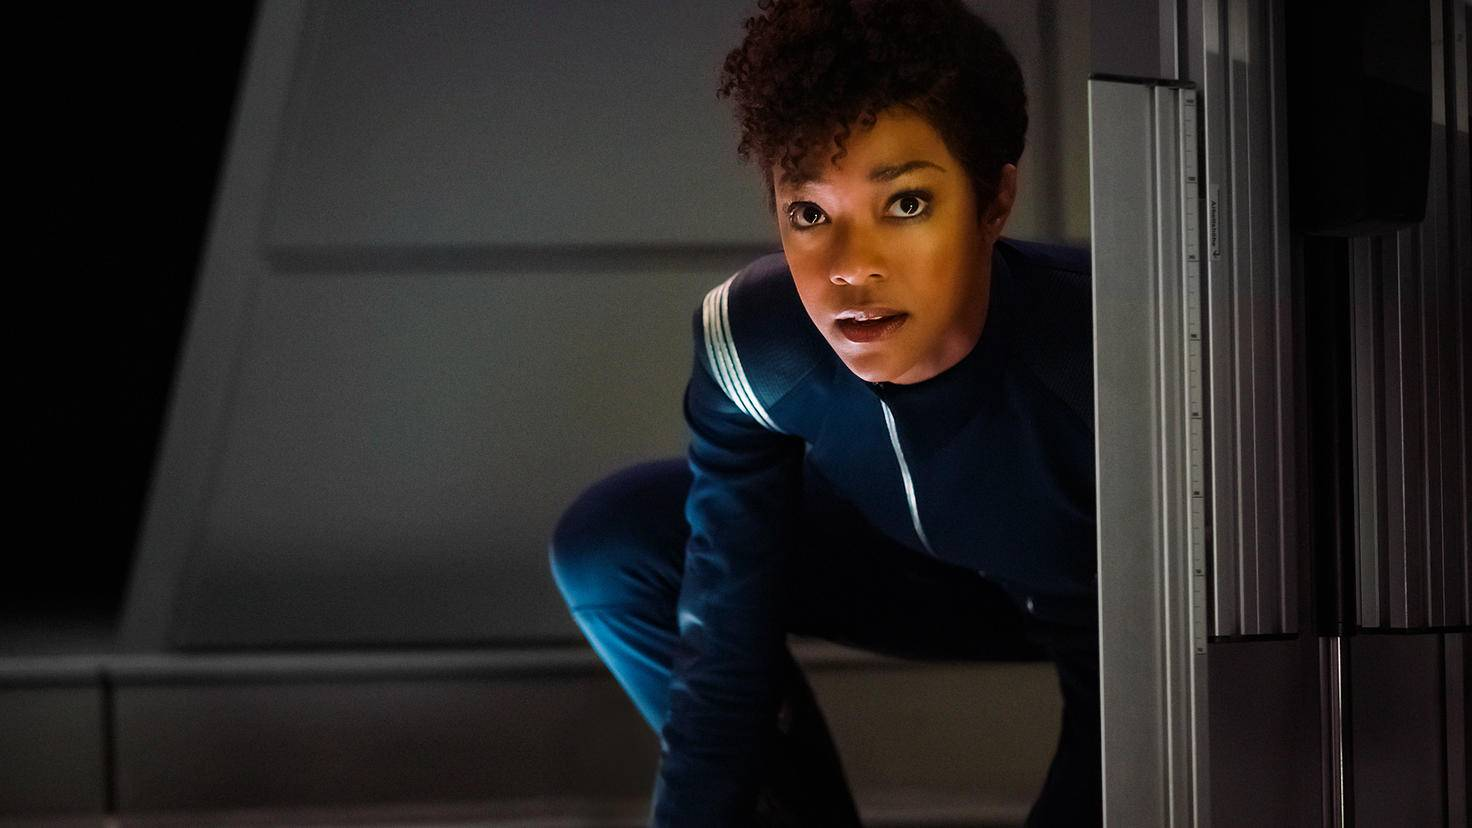 Star Trek Discovery-Sonequa Martin-Green-CBS Interactive. All Rights Reserved-05_110493_0857b3